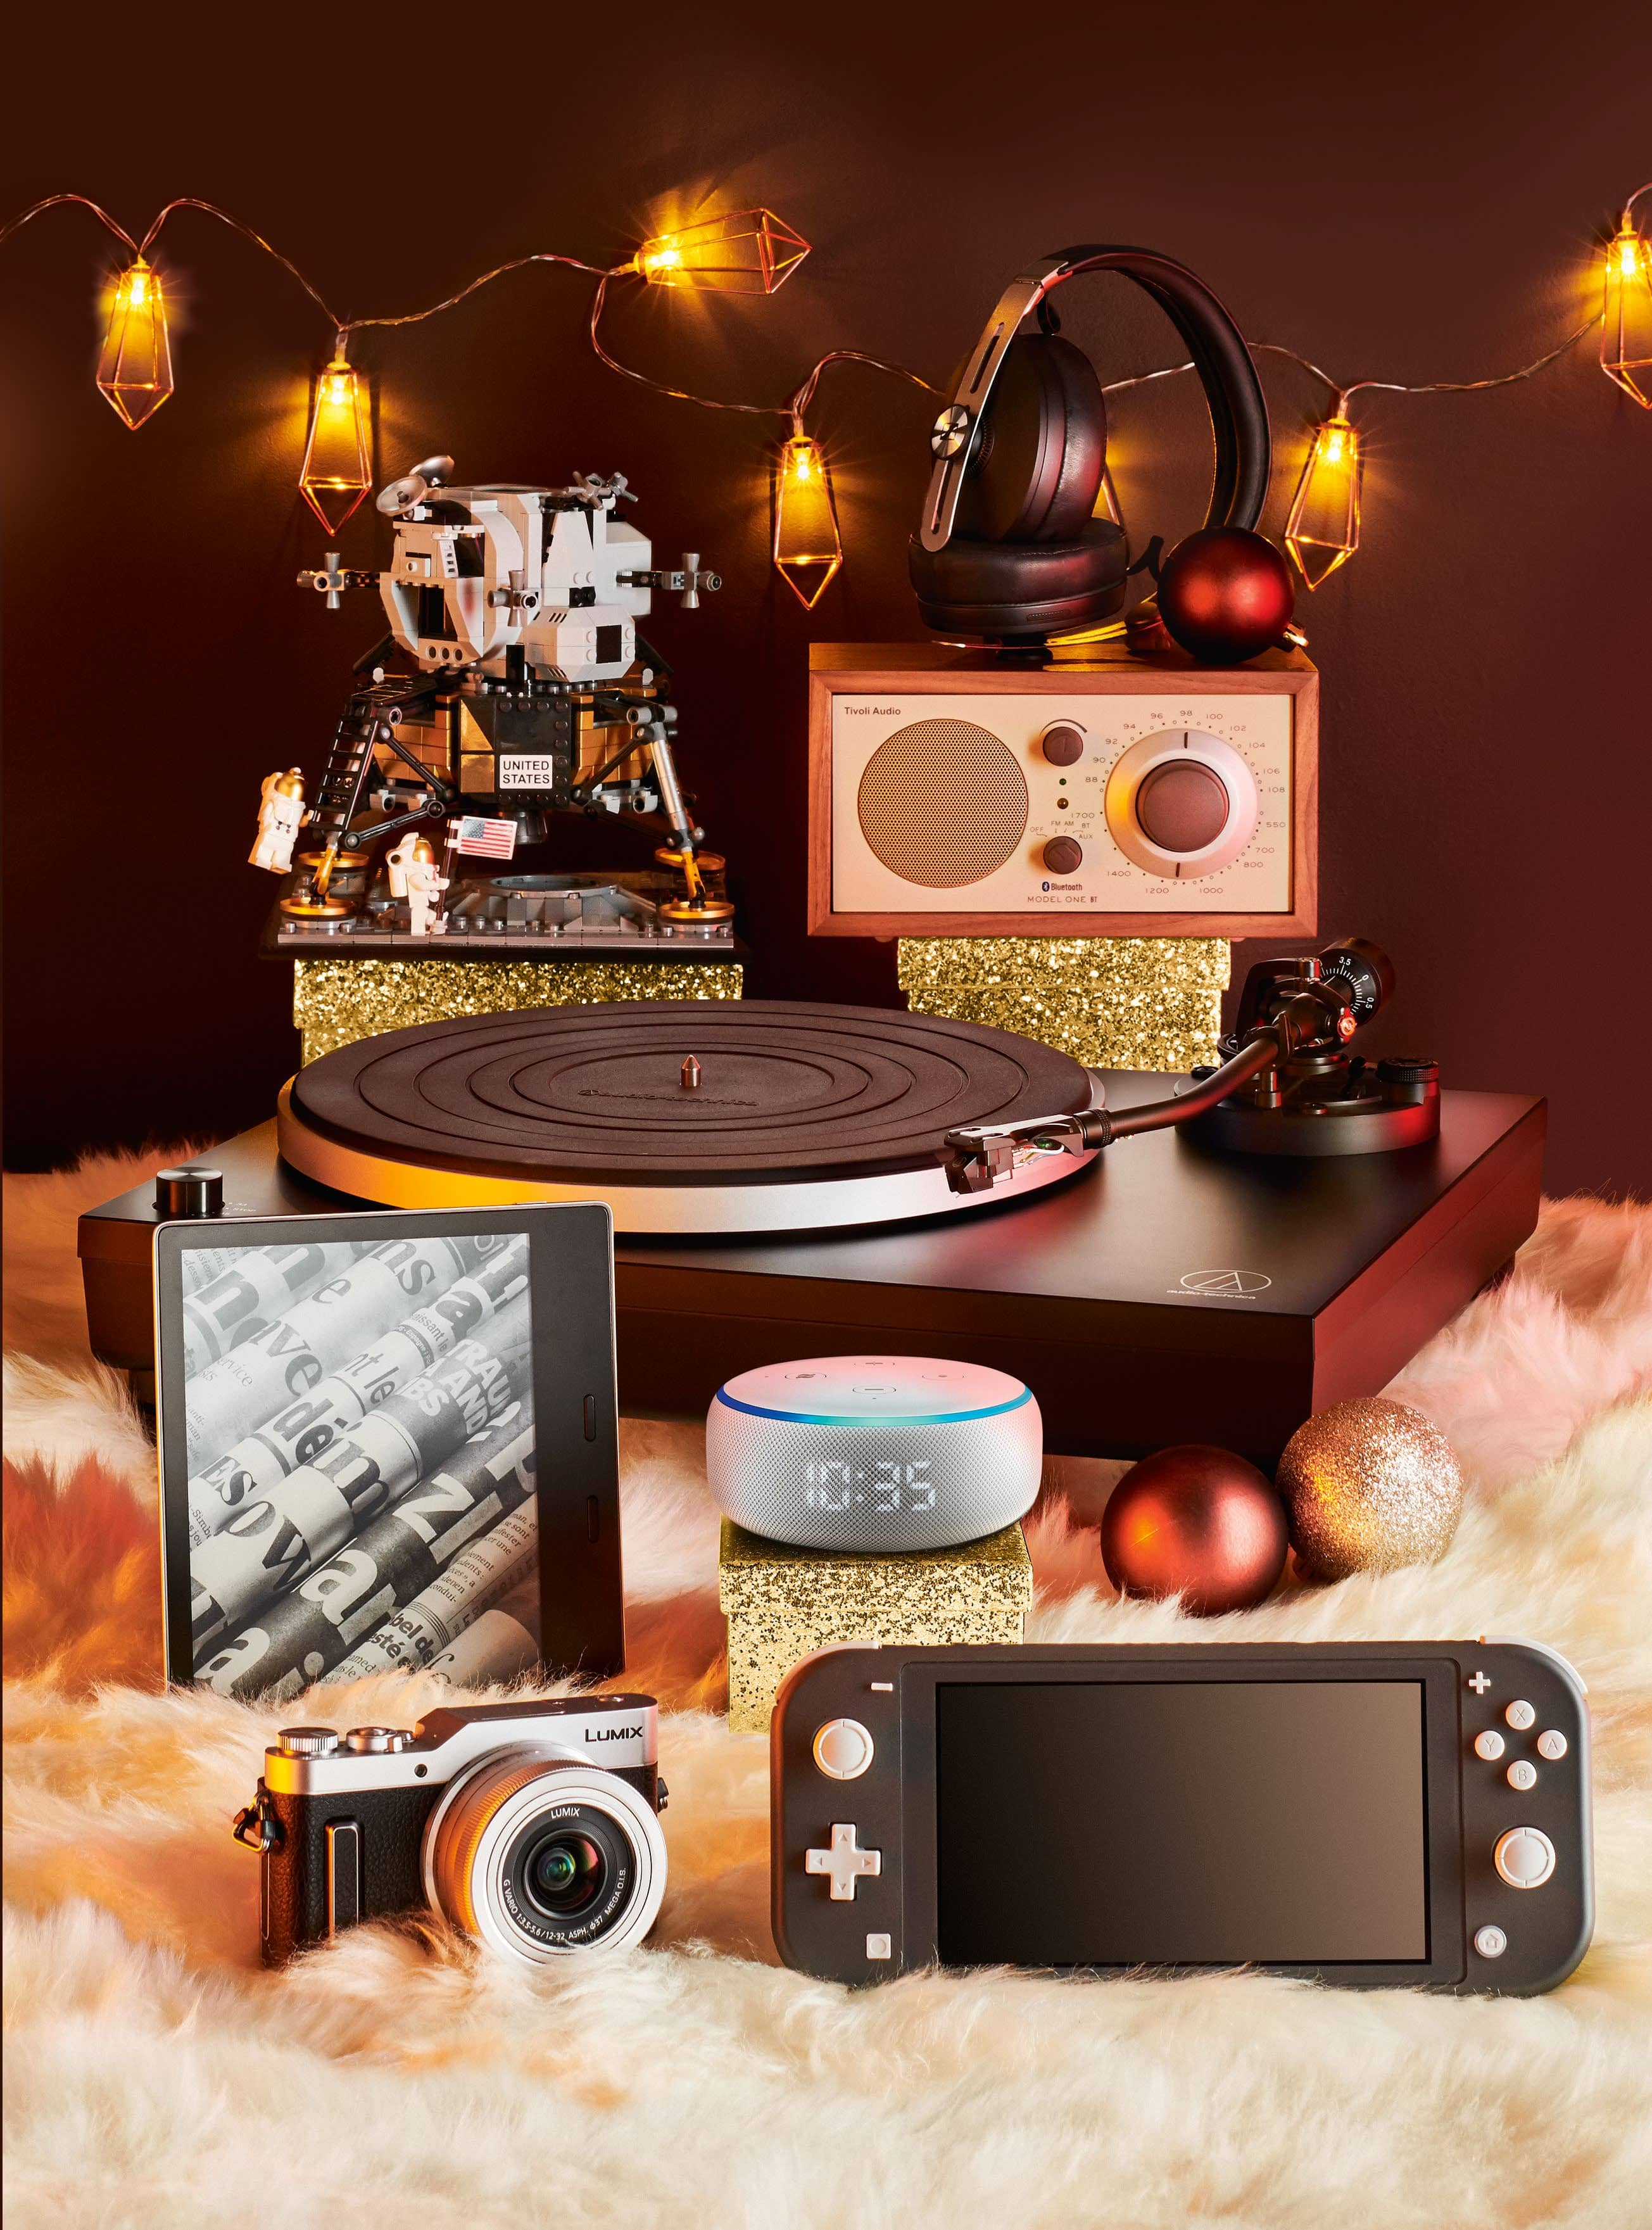 Christmas Gadget Gifts